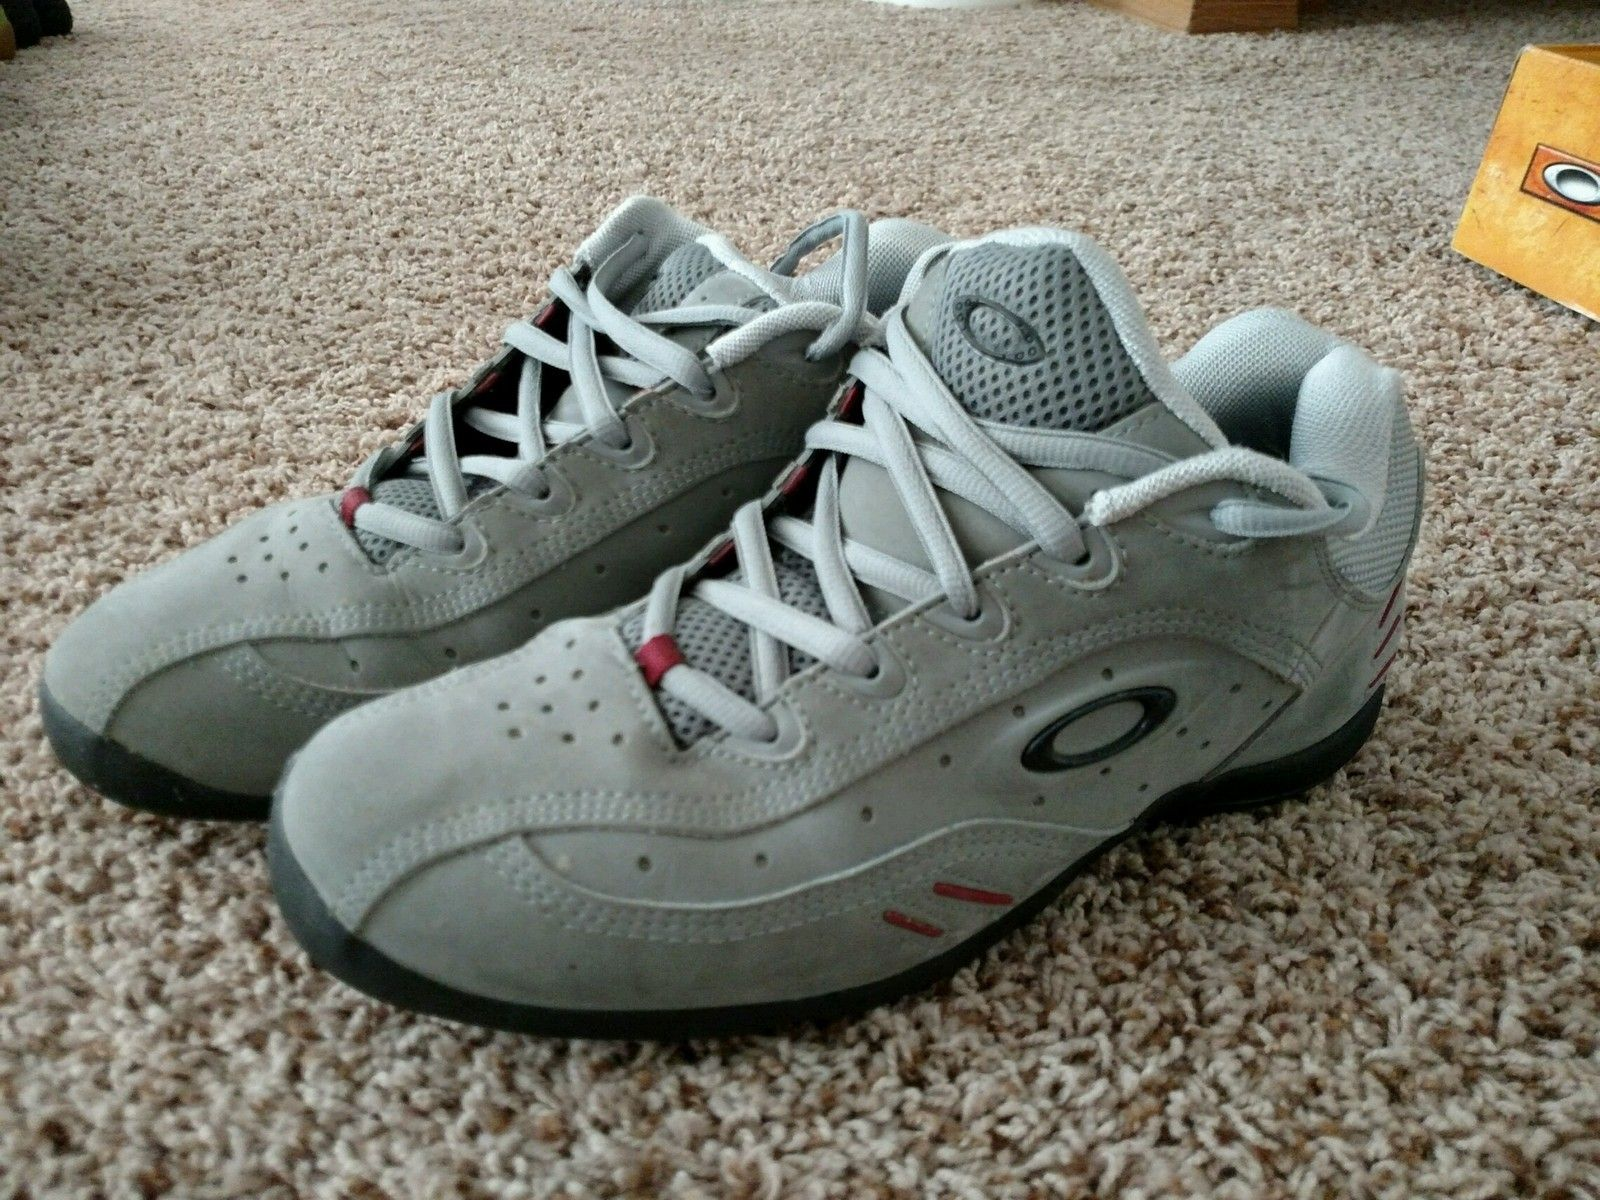 Oakley Size 12 Shoes White Leather - IMG_20150625_084322.jpg